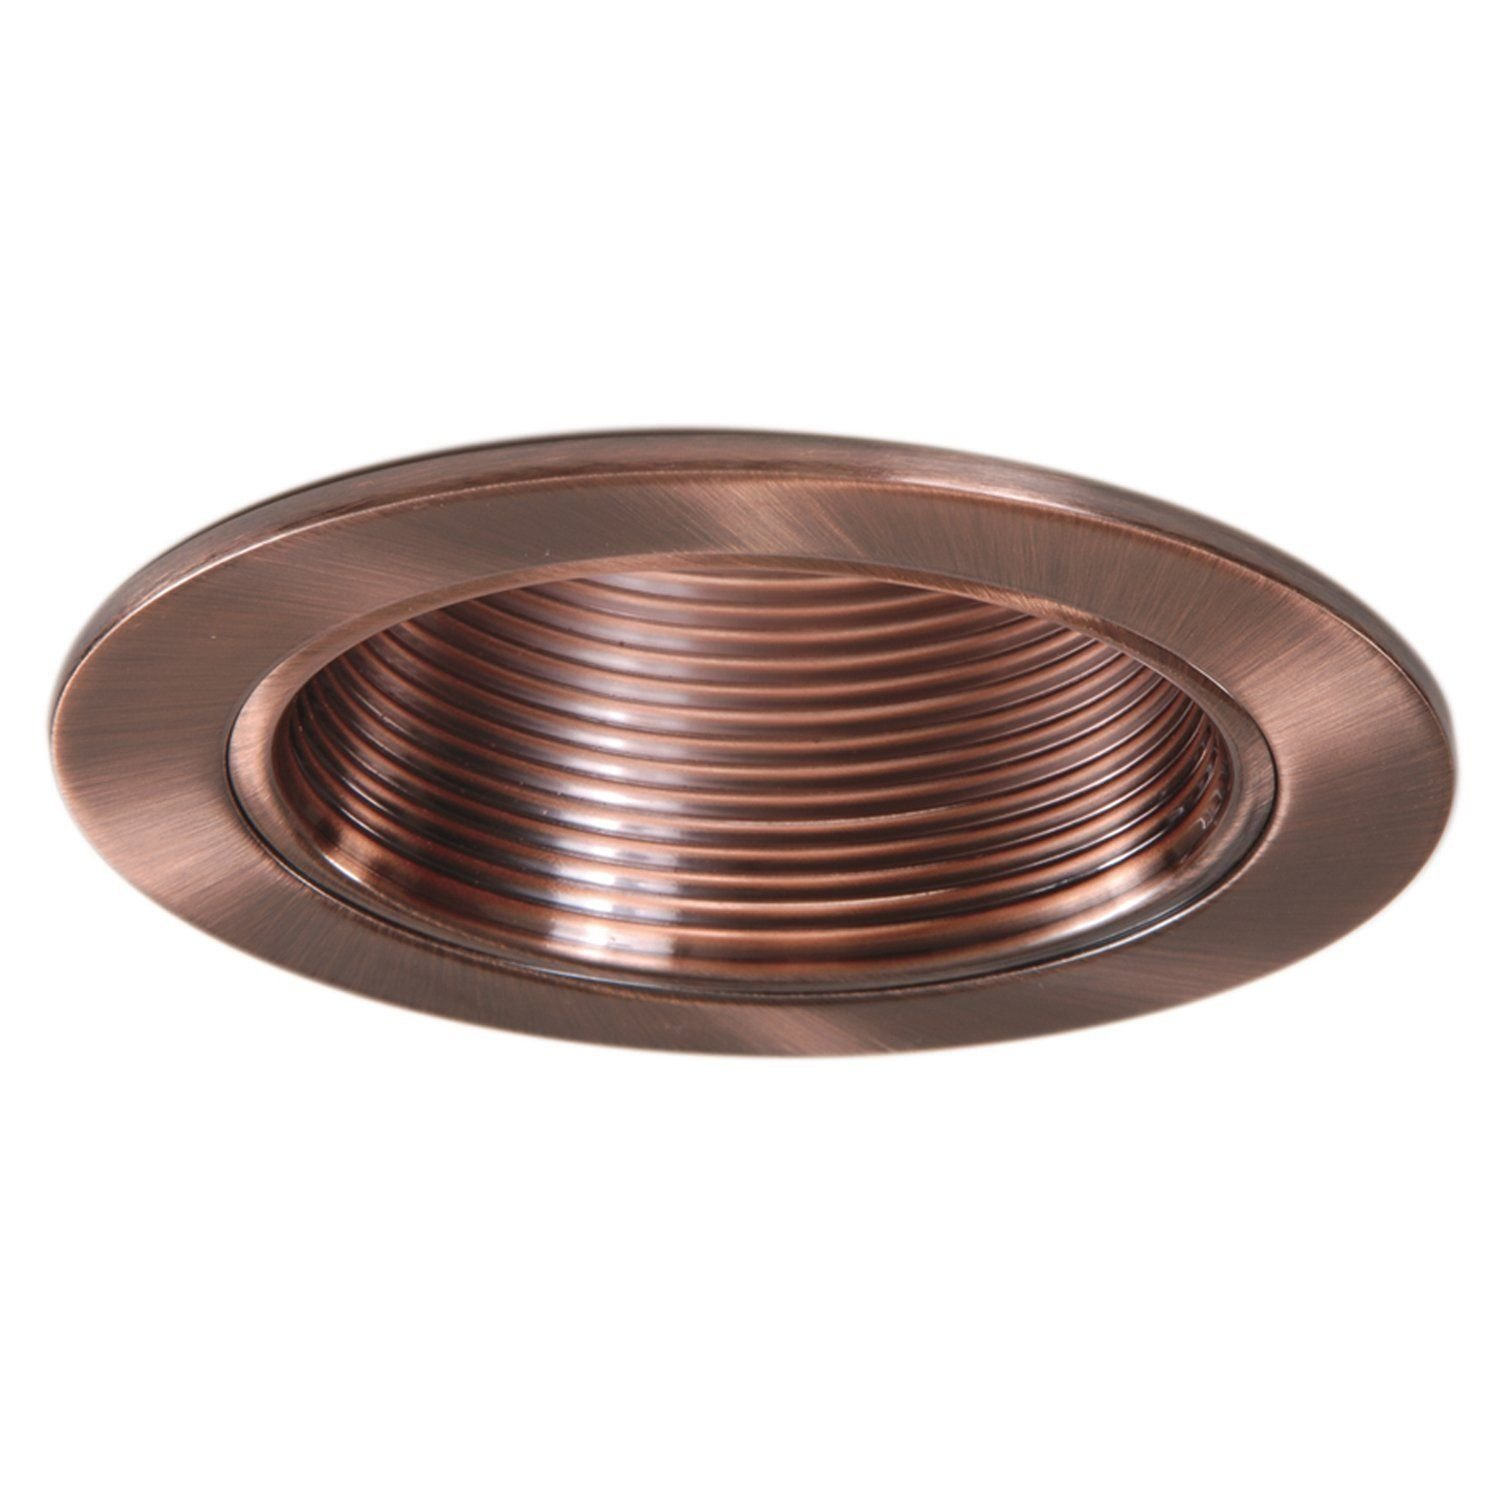 4  INCH COPPER TRIM- RECESSED CAN LIGHT-REPLACES HALO 953AC-6 PACK - - Amazon.com  sc 1 st  Amazon.com & 4